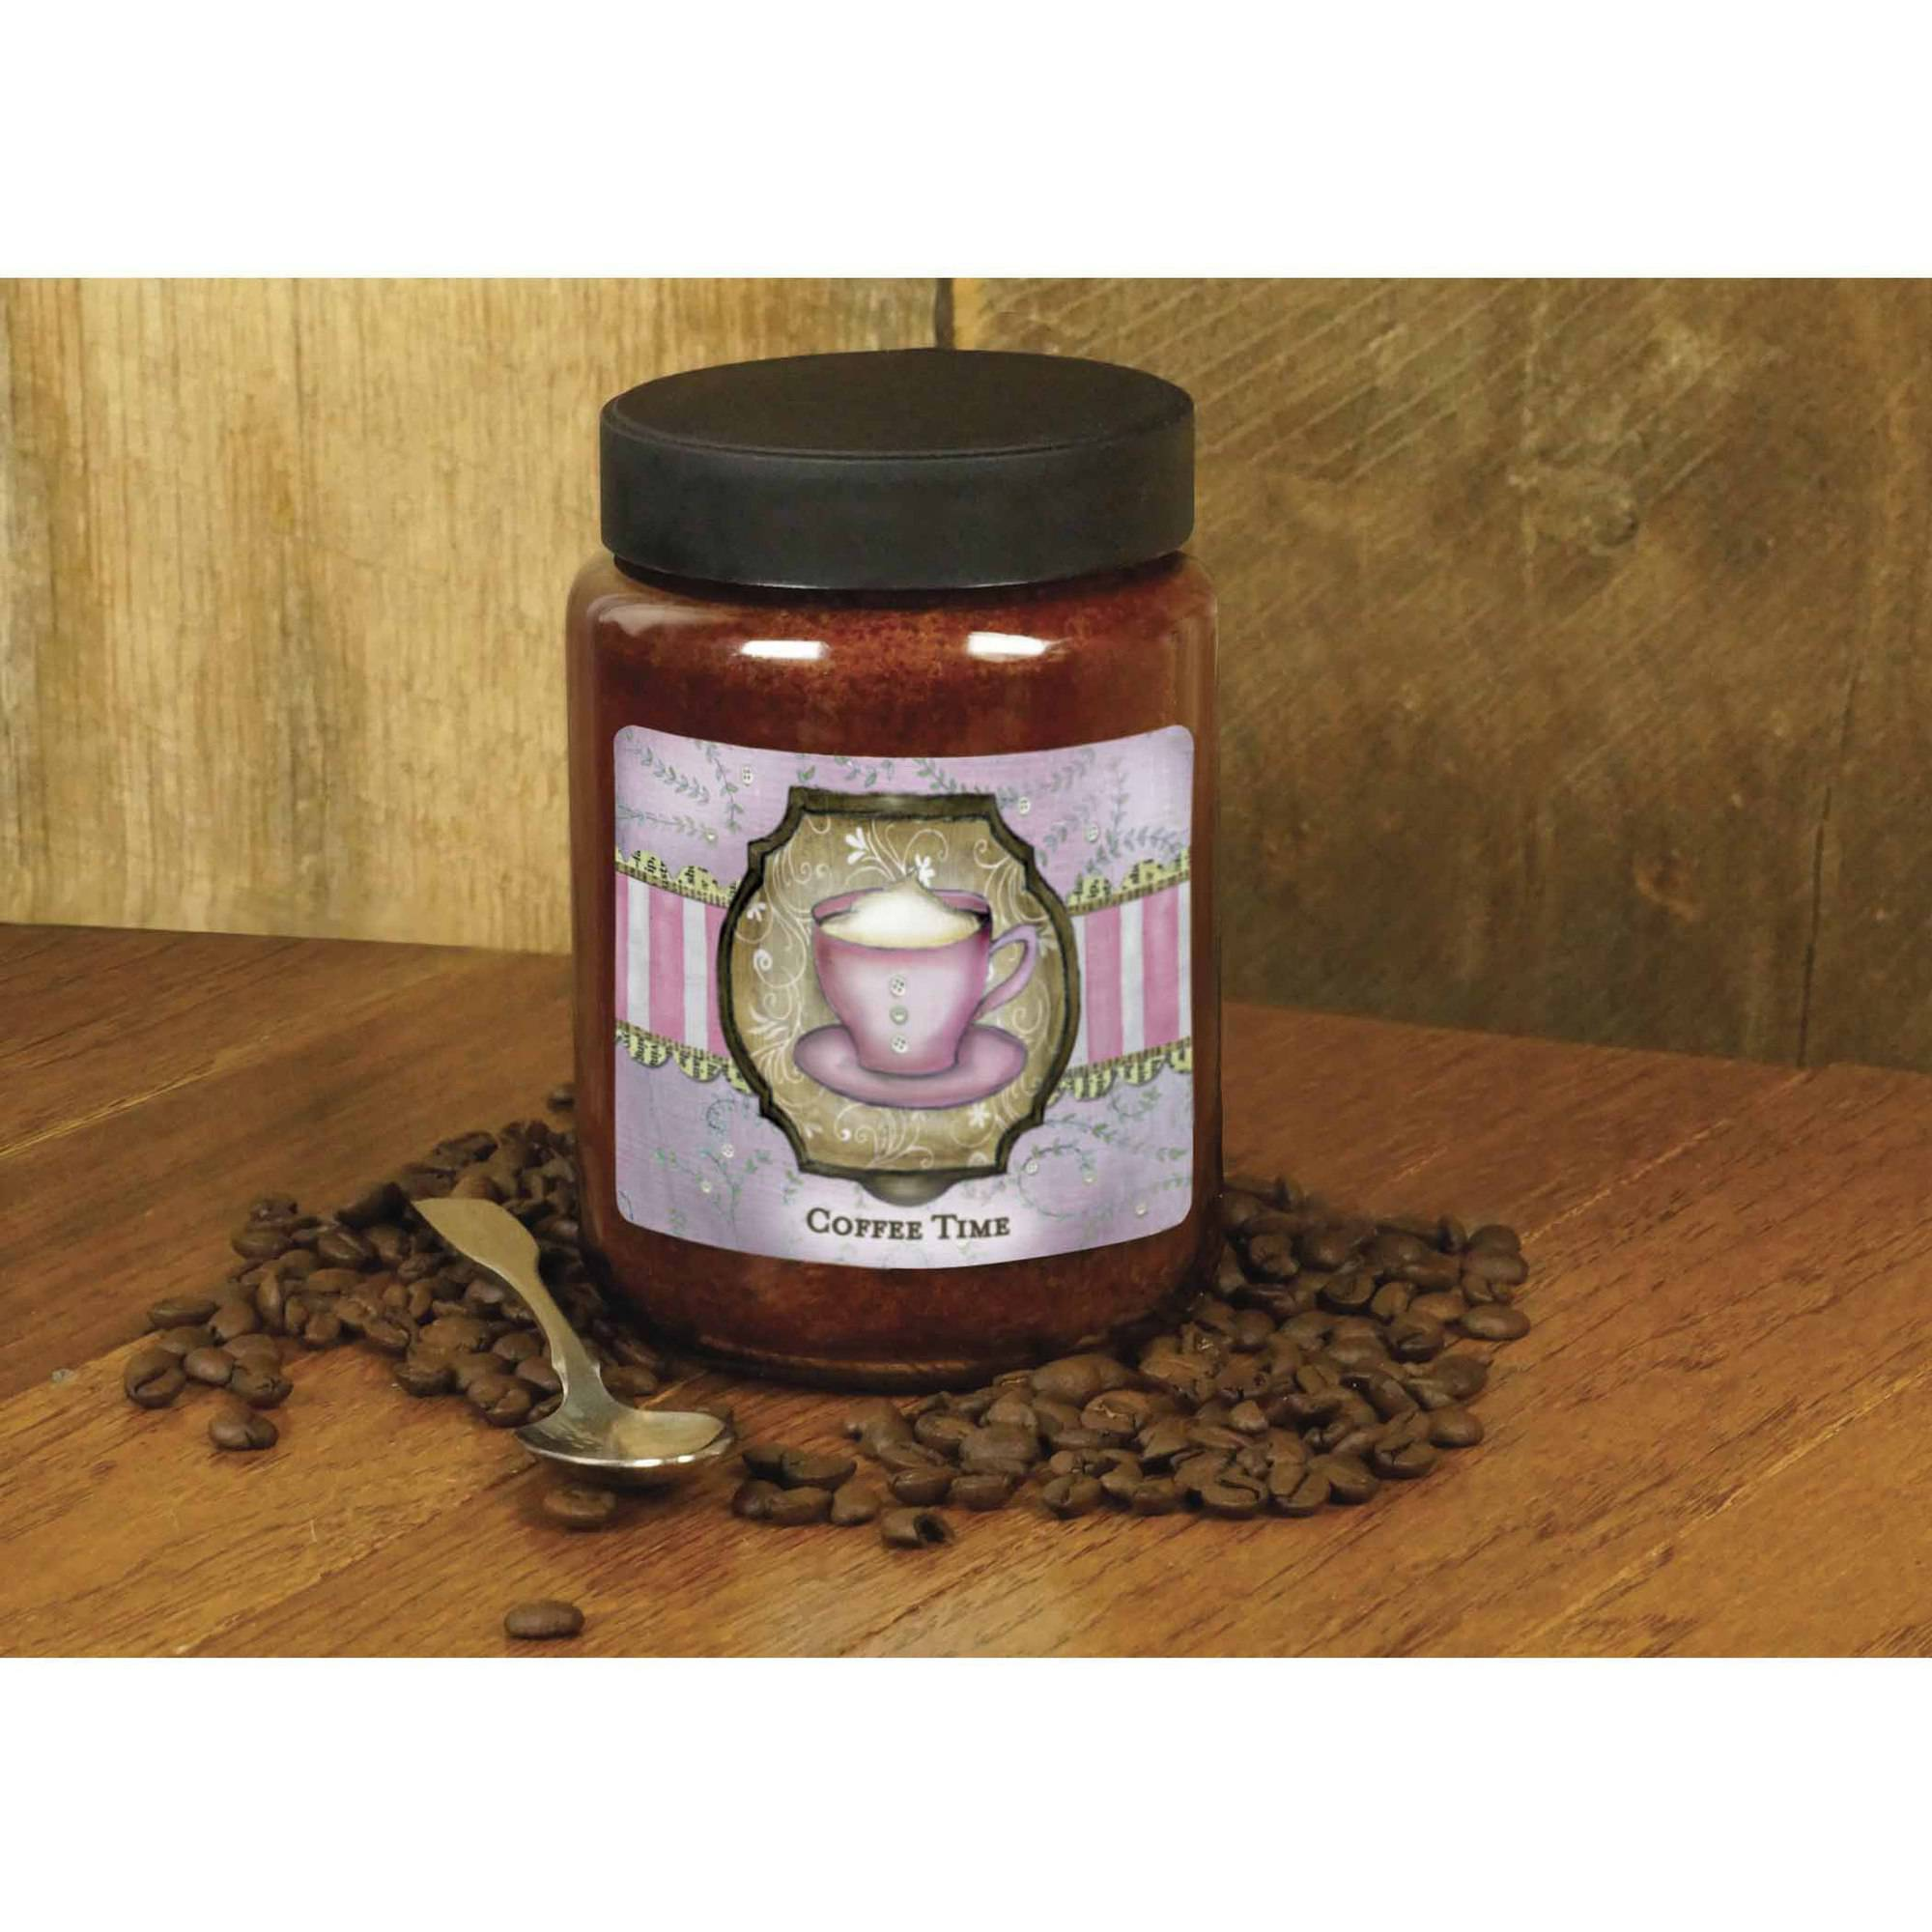 LANG Coffee Time 26-Ounce Jar Candle, Scented with Espresso, Coconut, Chocolate and Vanilla